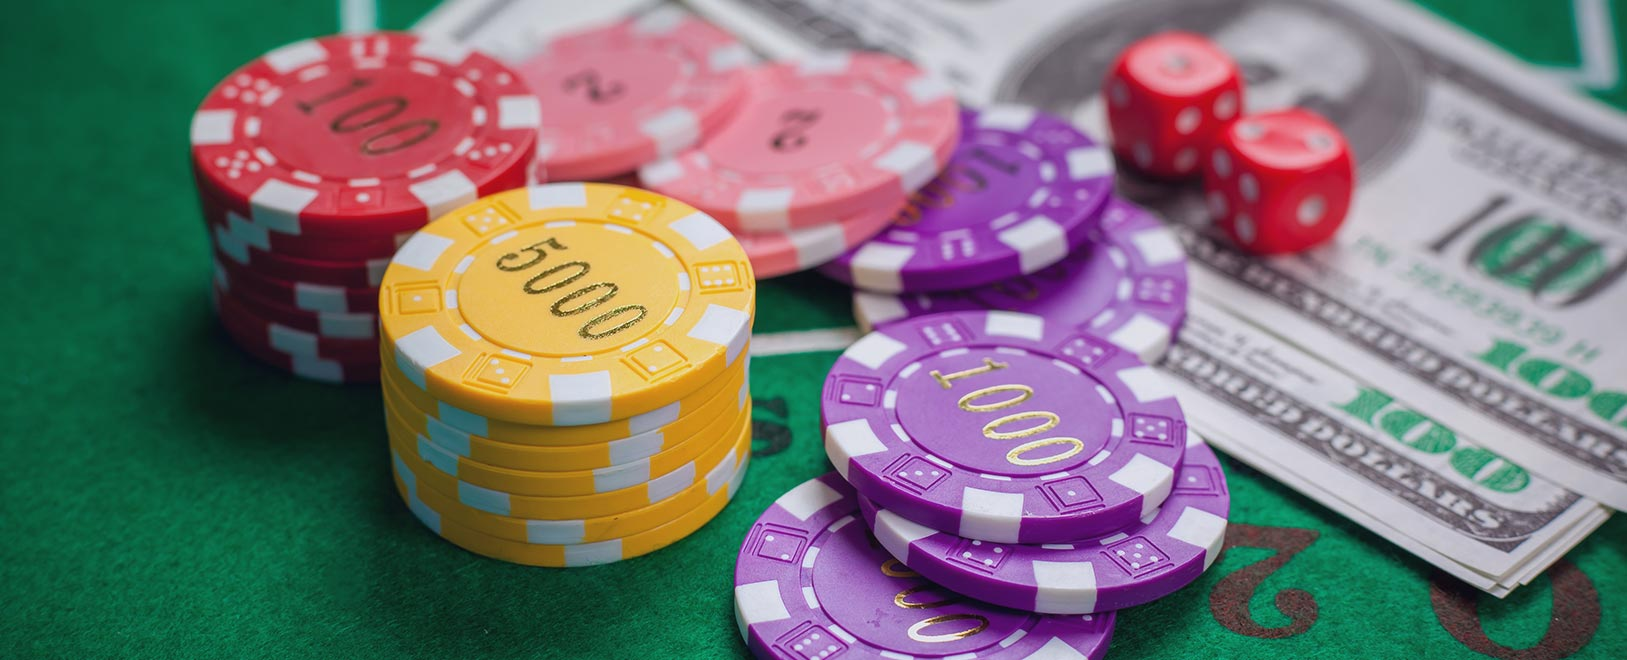 Online Poker Promotions and Bonuses at Bovada